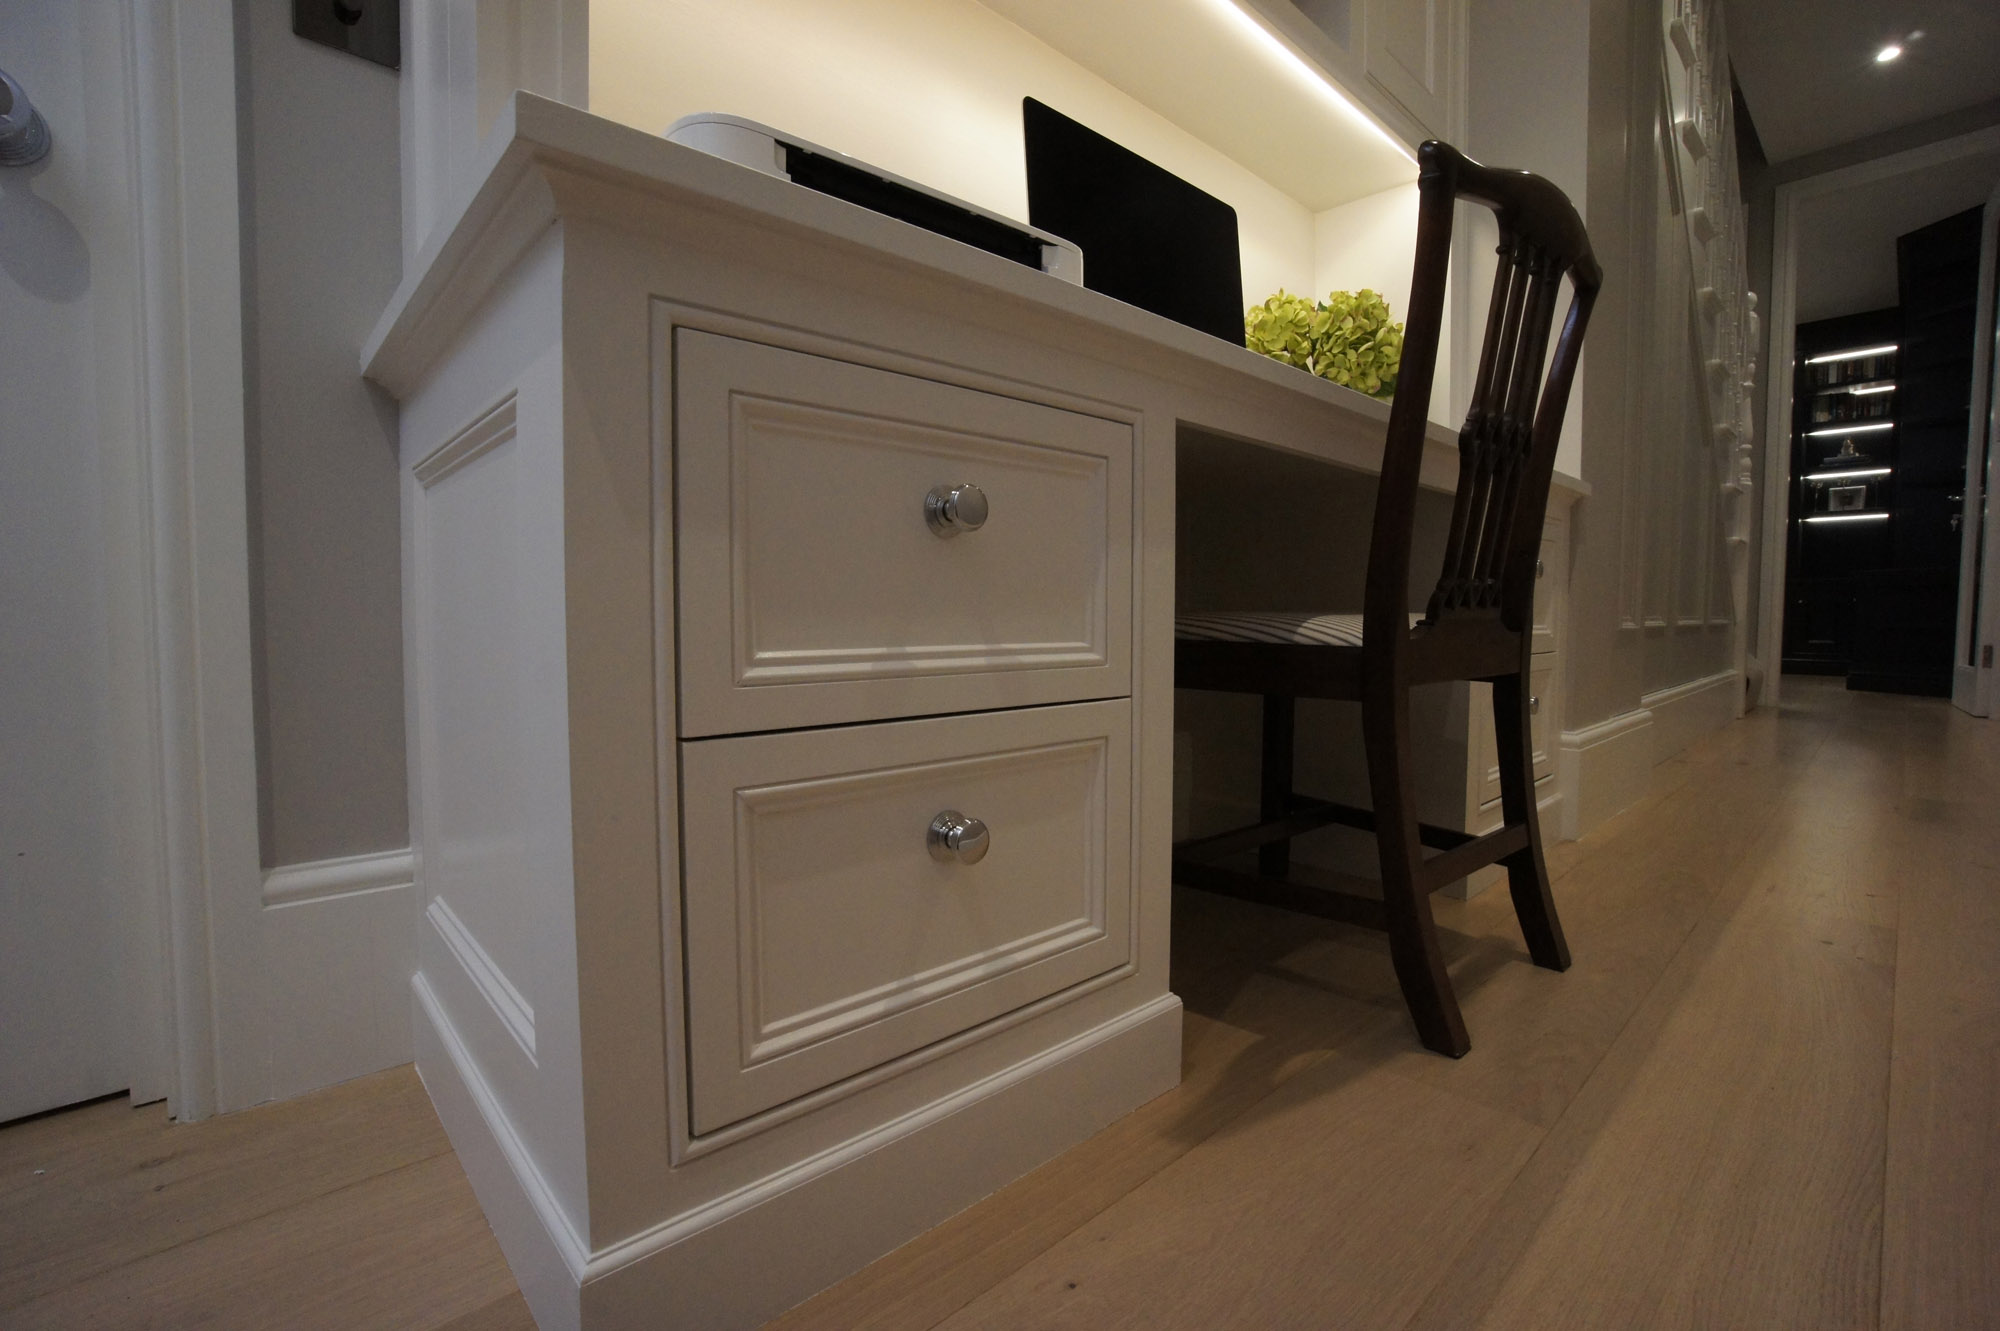 GW-Cabinetry-Interior-Solutions-Storage-4.jpg